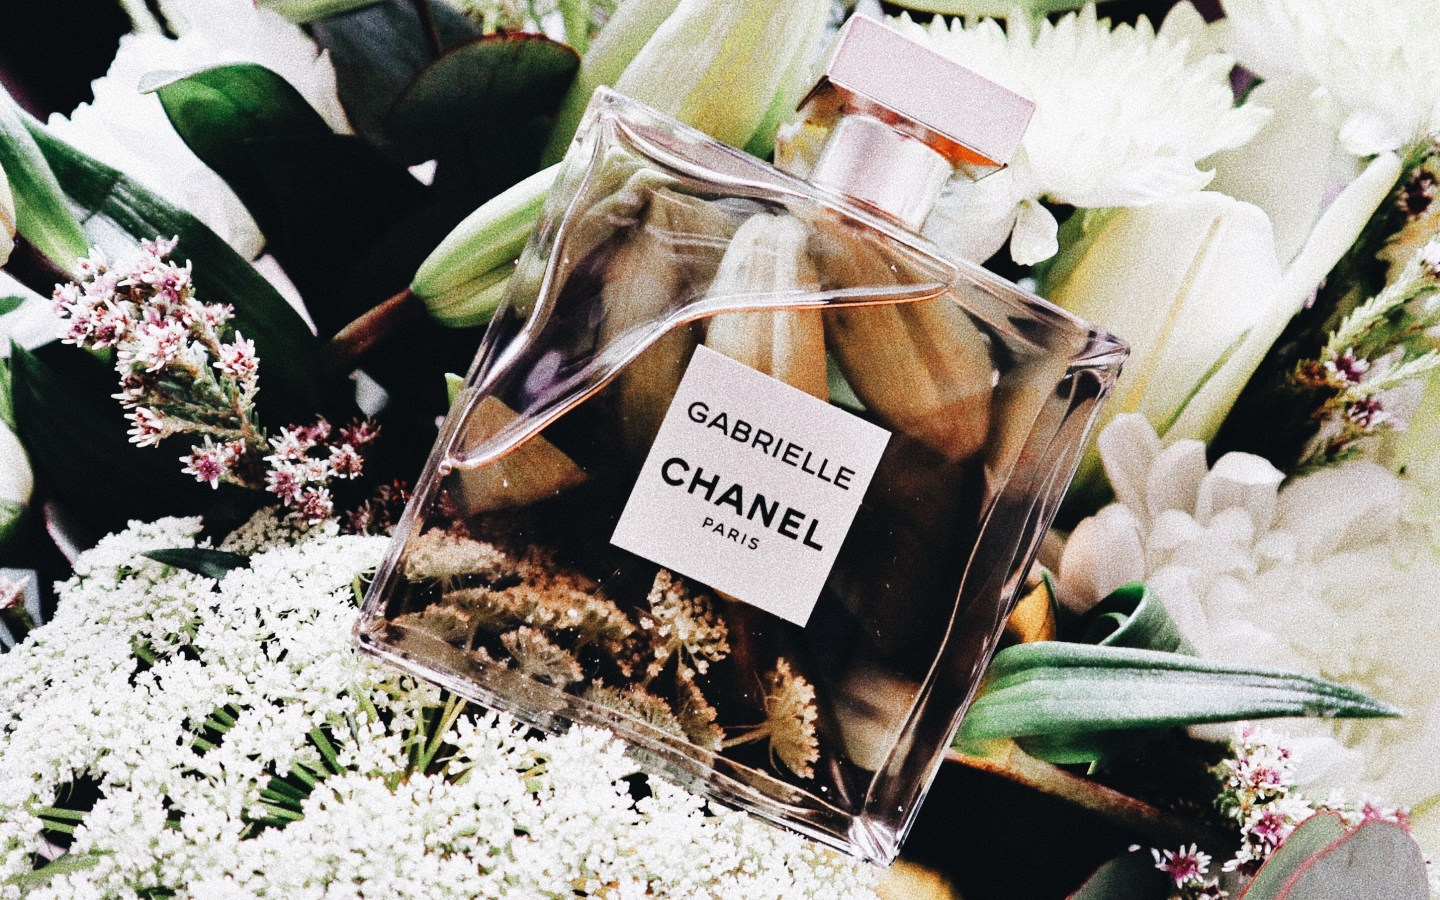 GABRIELLE CHANEL, AN ODE TO THE CHANEL WOMAN